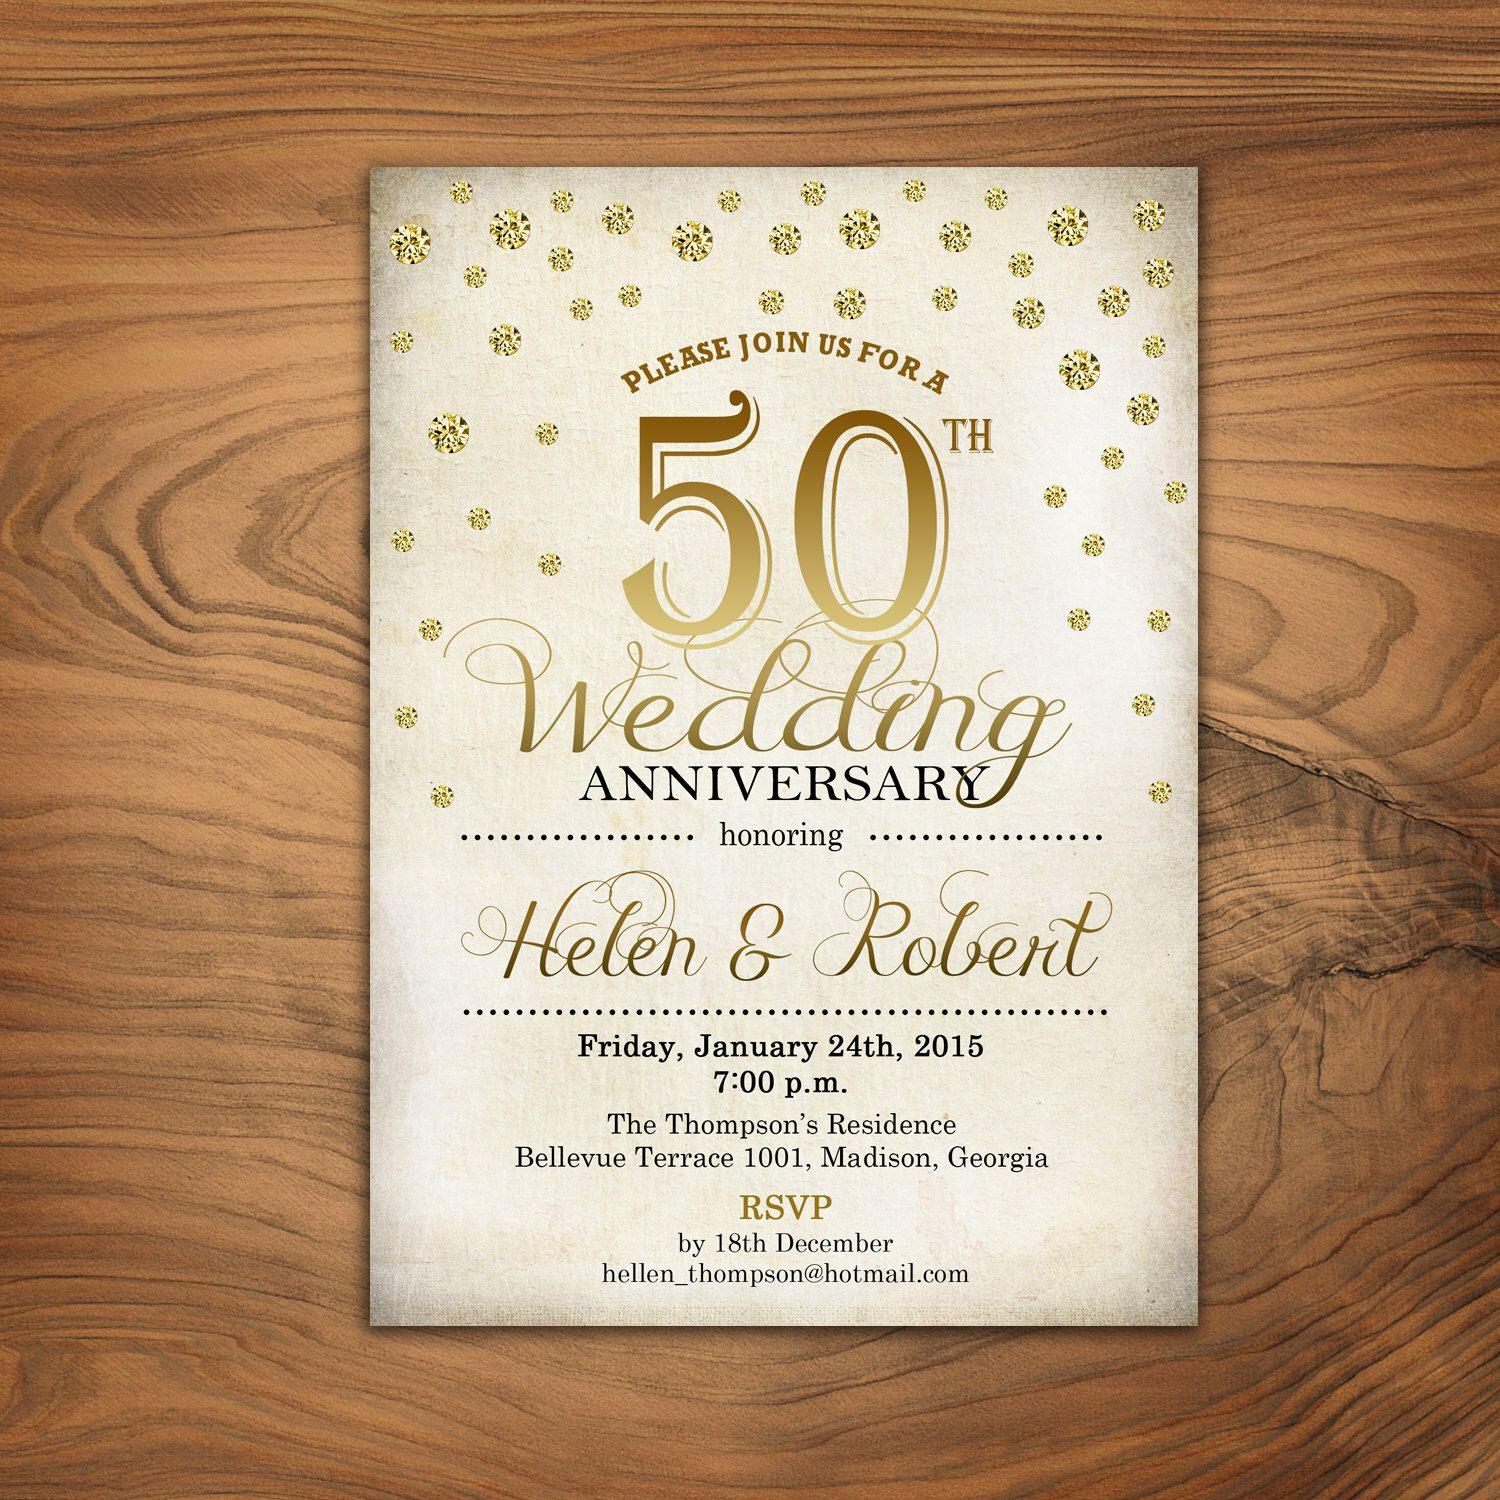 50th Wedding Anniversary Invitation Ideas: Pin By Piper Davis On Party Planning